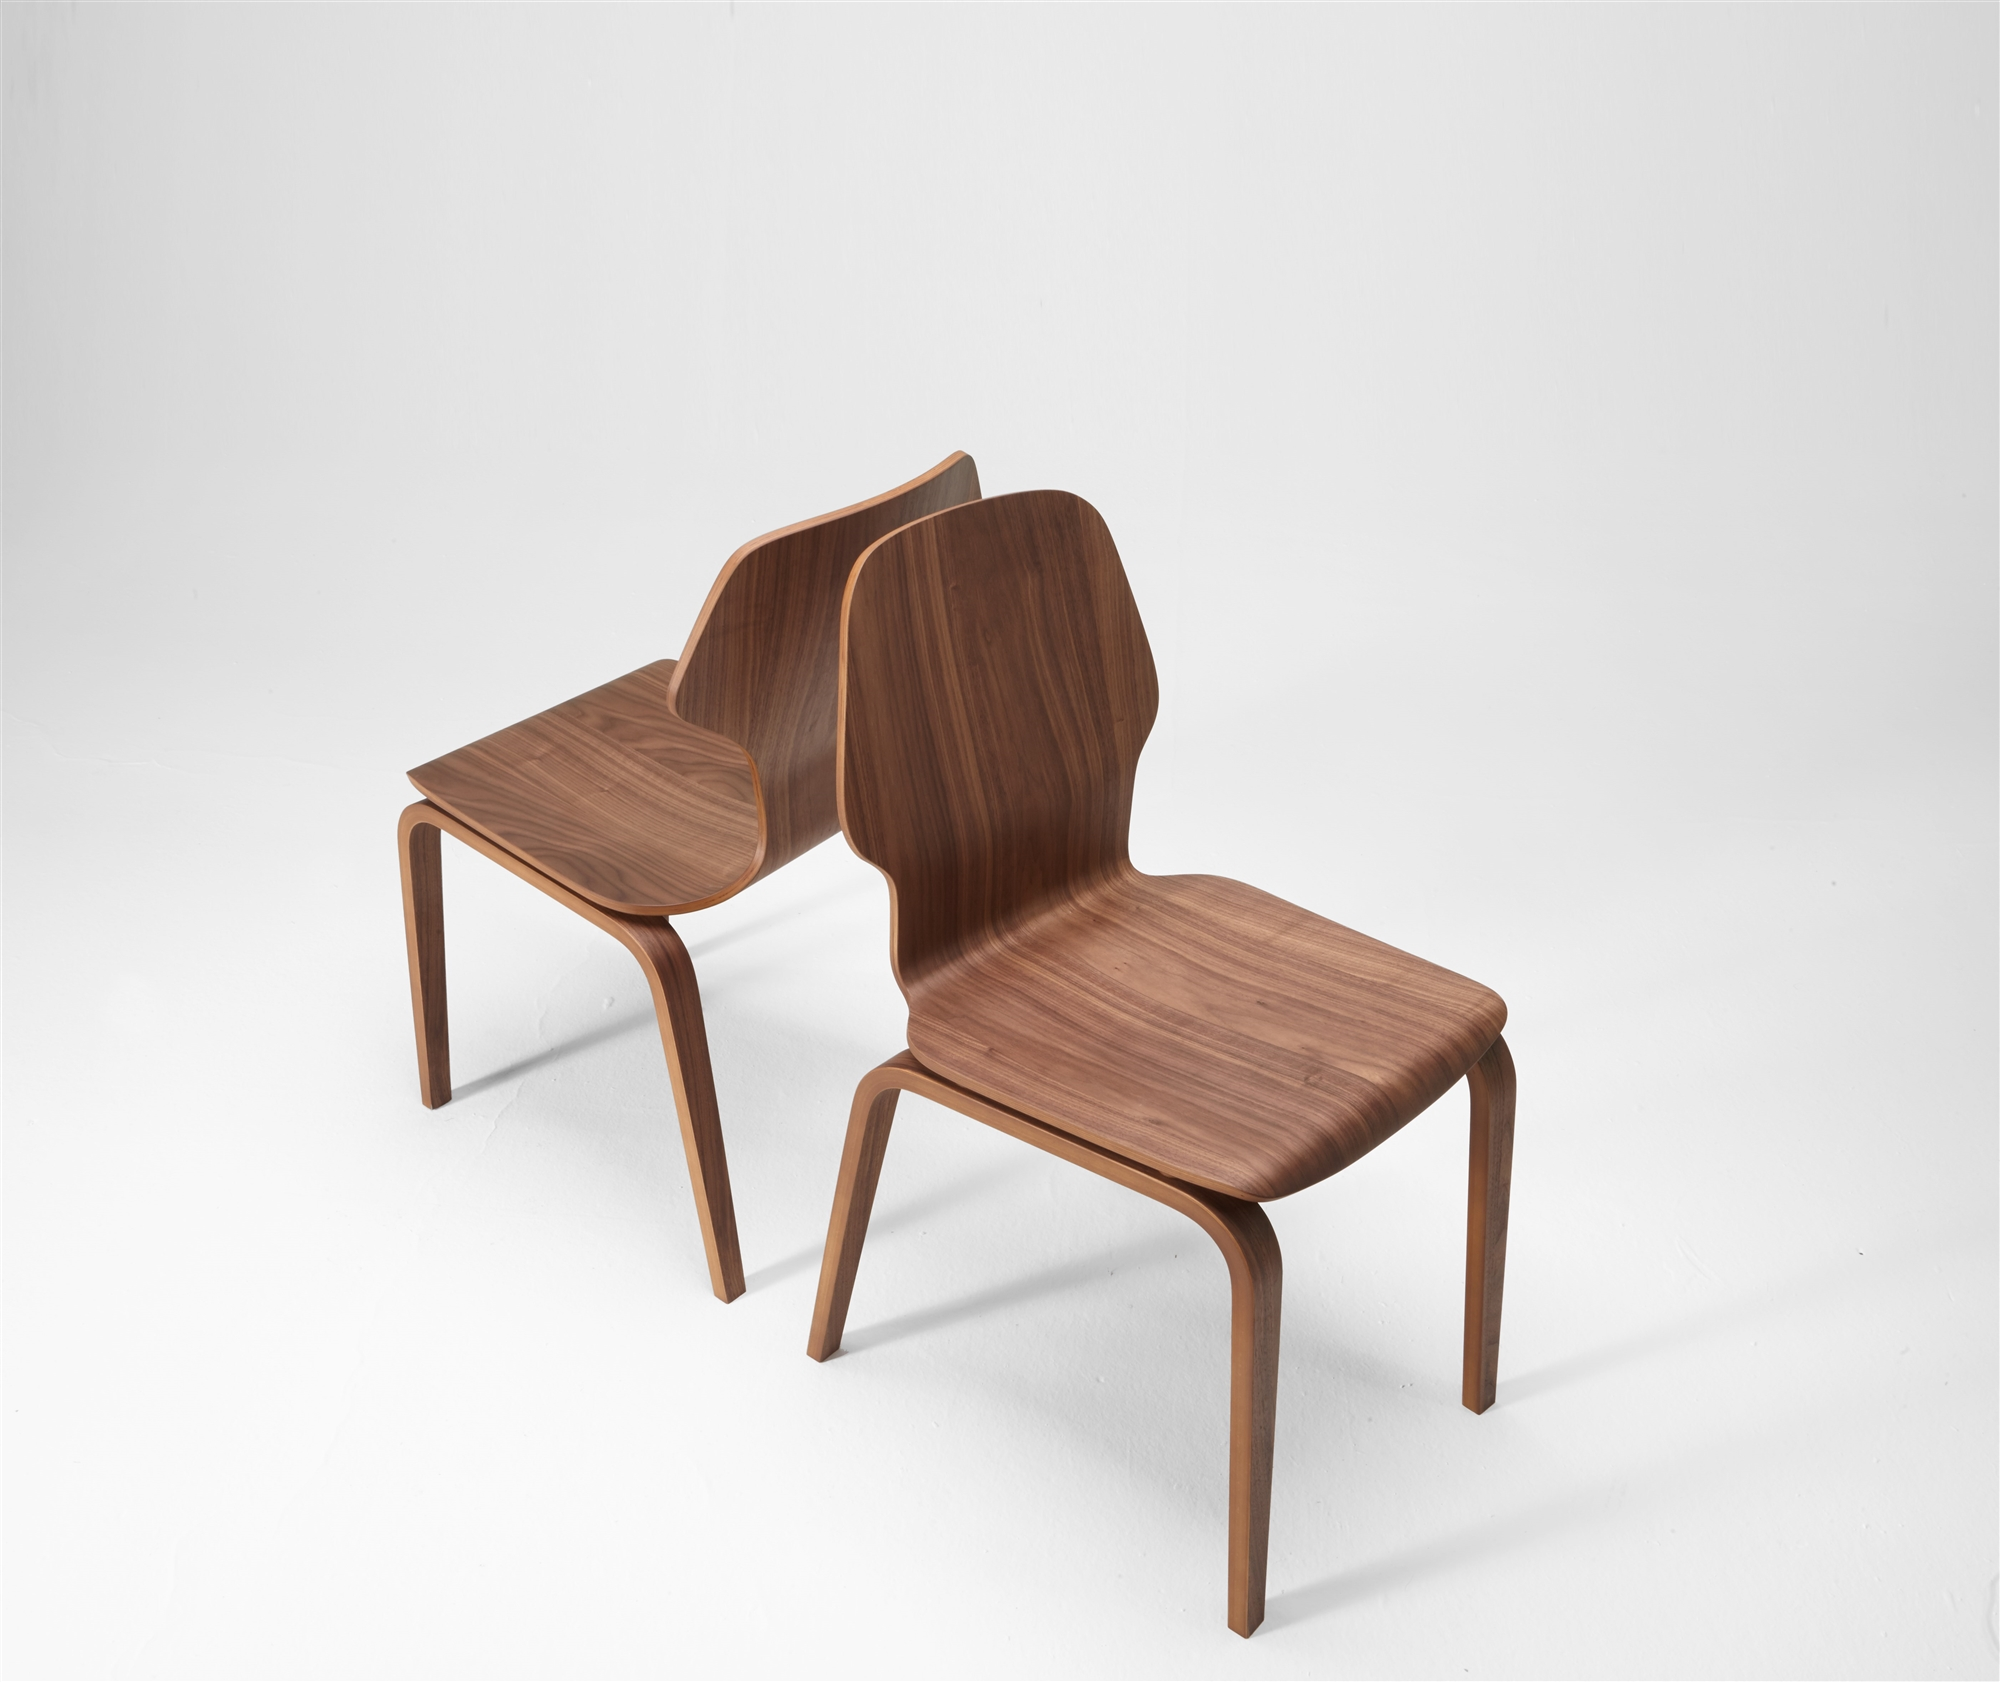 ginger chair | Caon Arreda